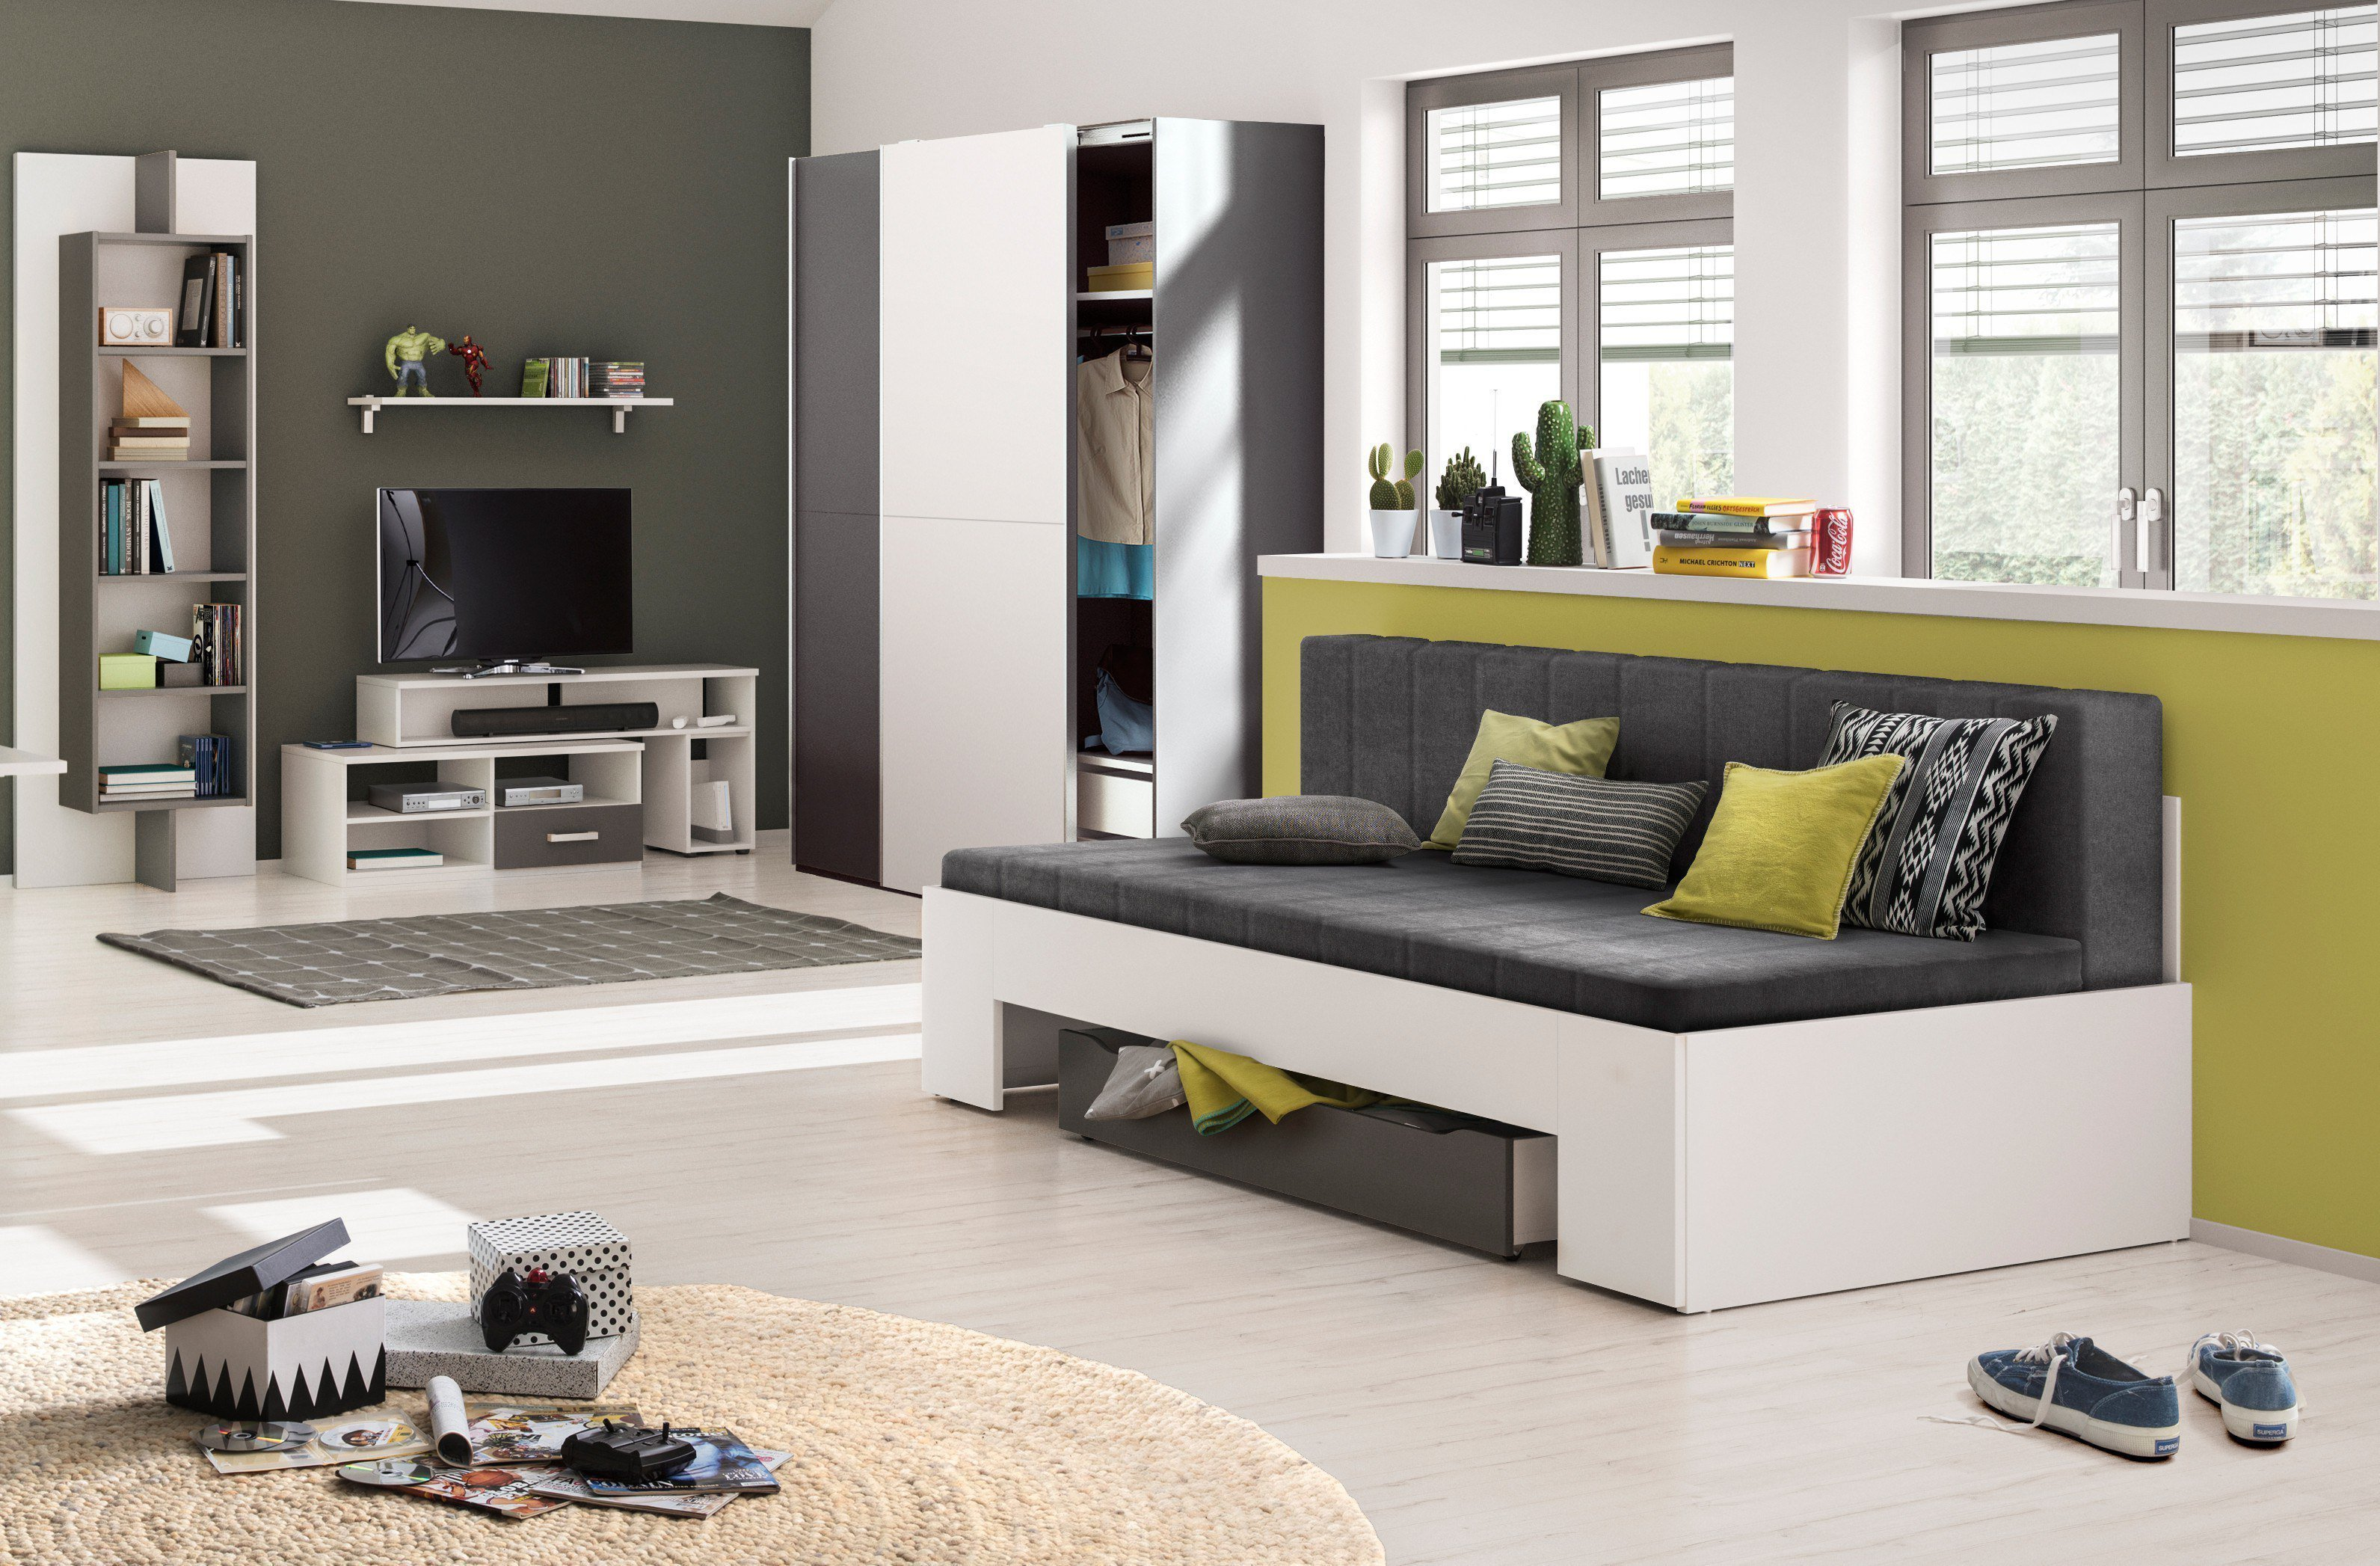 r hr slide schrank und bettsofa wei anthrazit m bel letz ihr online shop. Black Bedroom Furniture Sets. Home Design Ideas